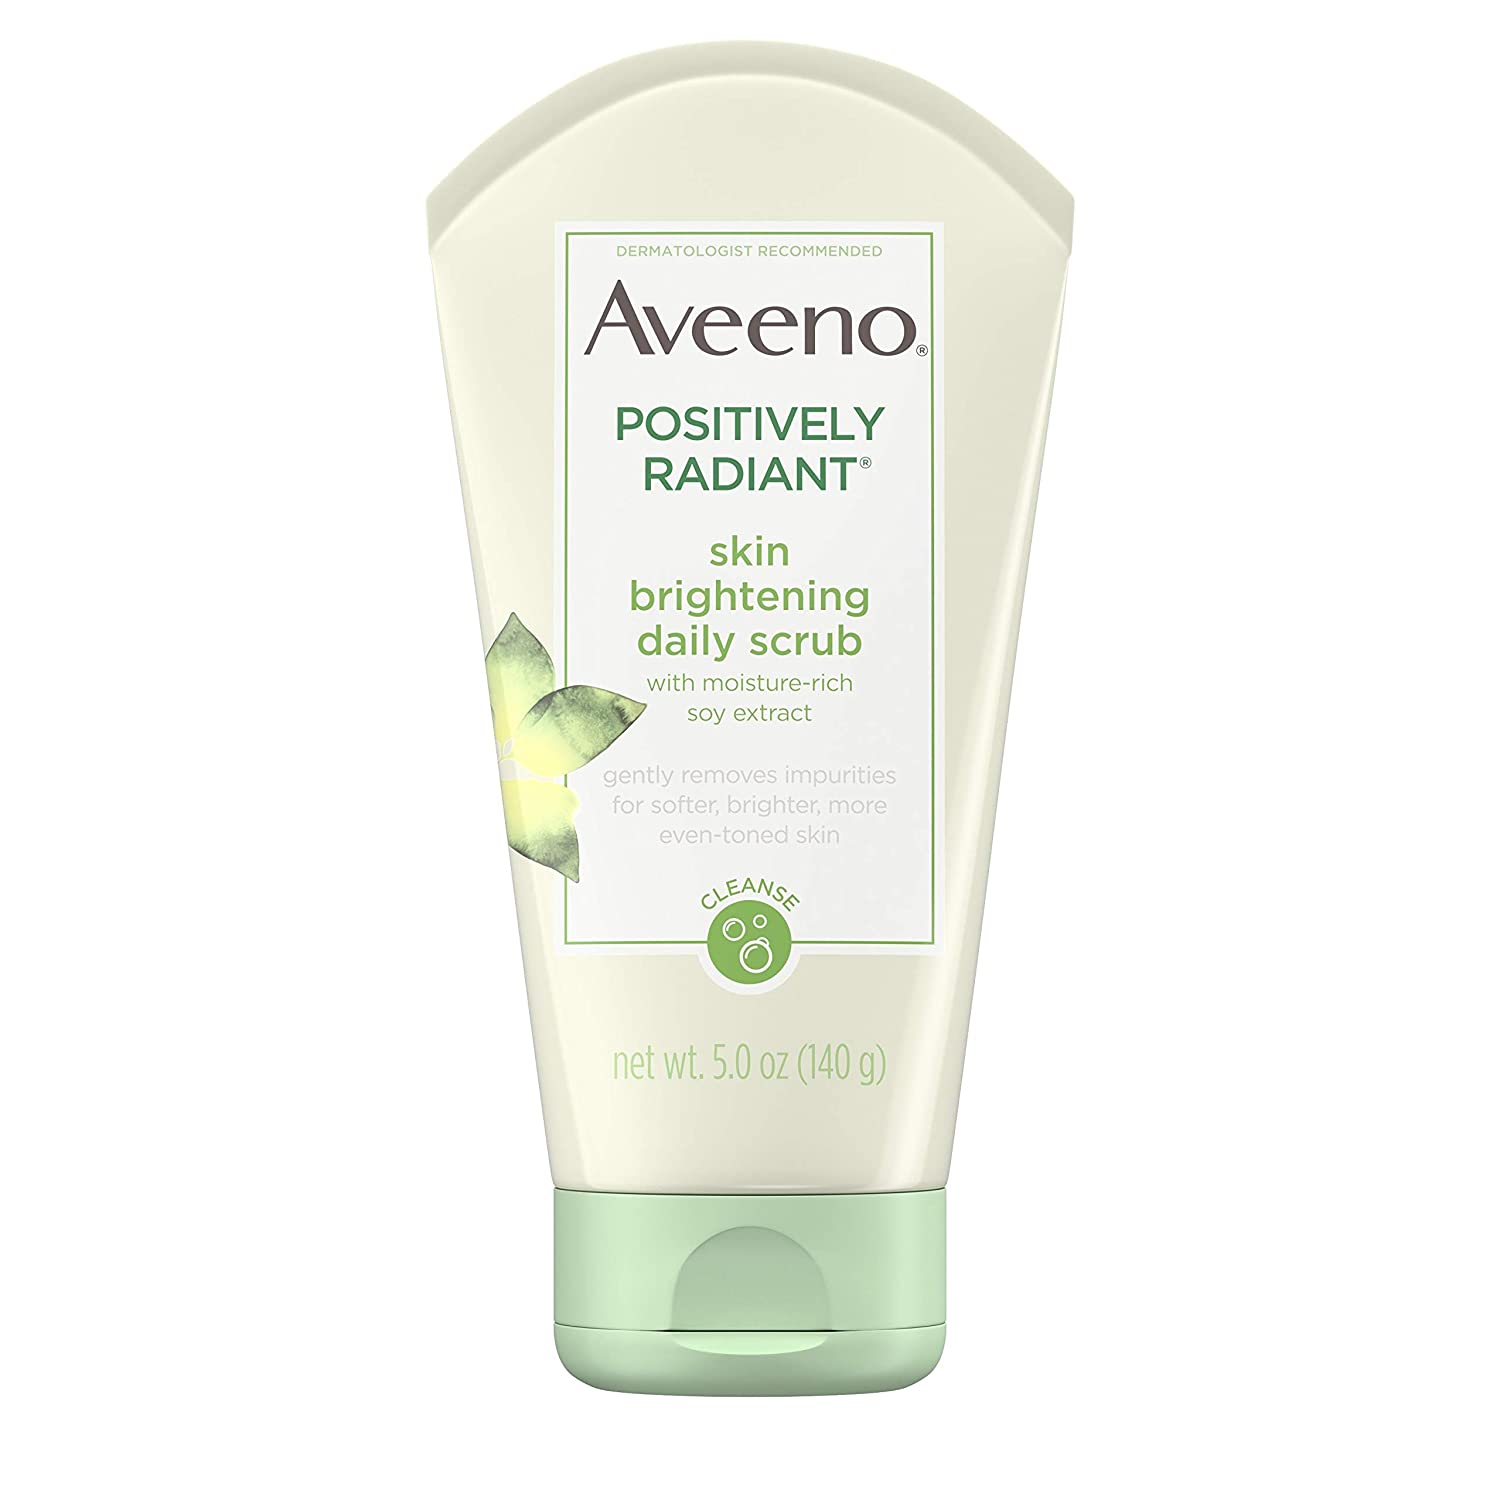 Aveeno Positively Radiant Skin Brightening Exfoliating Daily Facial Scrub, Moisture-Rich Soy Extract, Soap-Free, Hypoallergenic & Non-Comedogenic Face Cleanser, 5 oz: Beauty